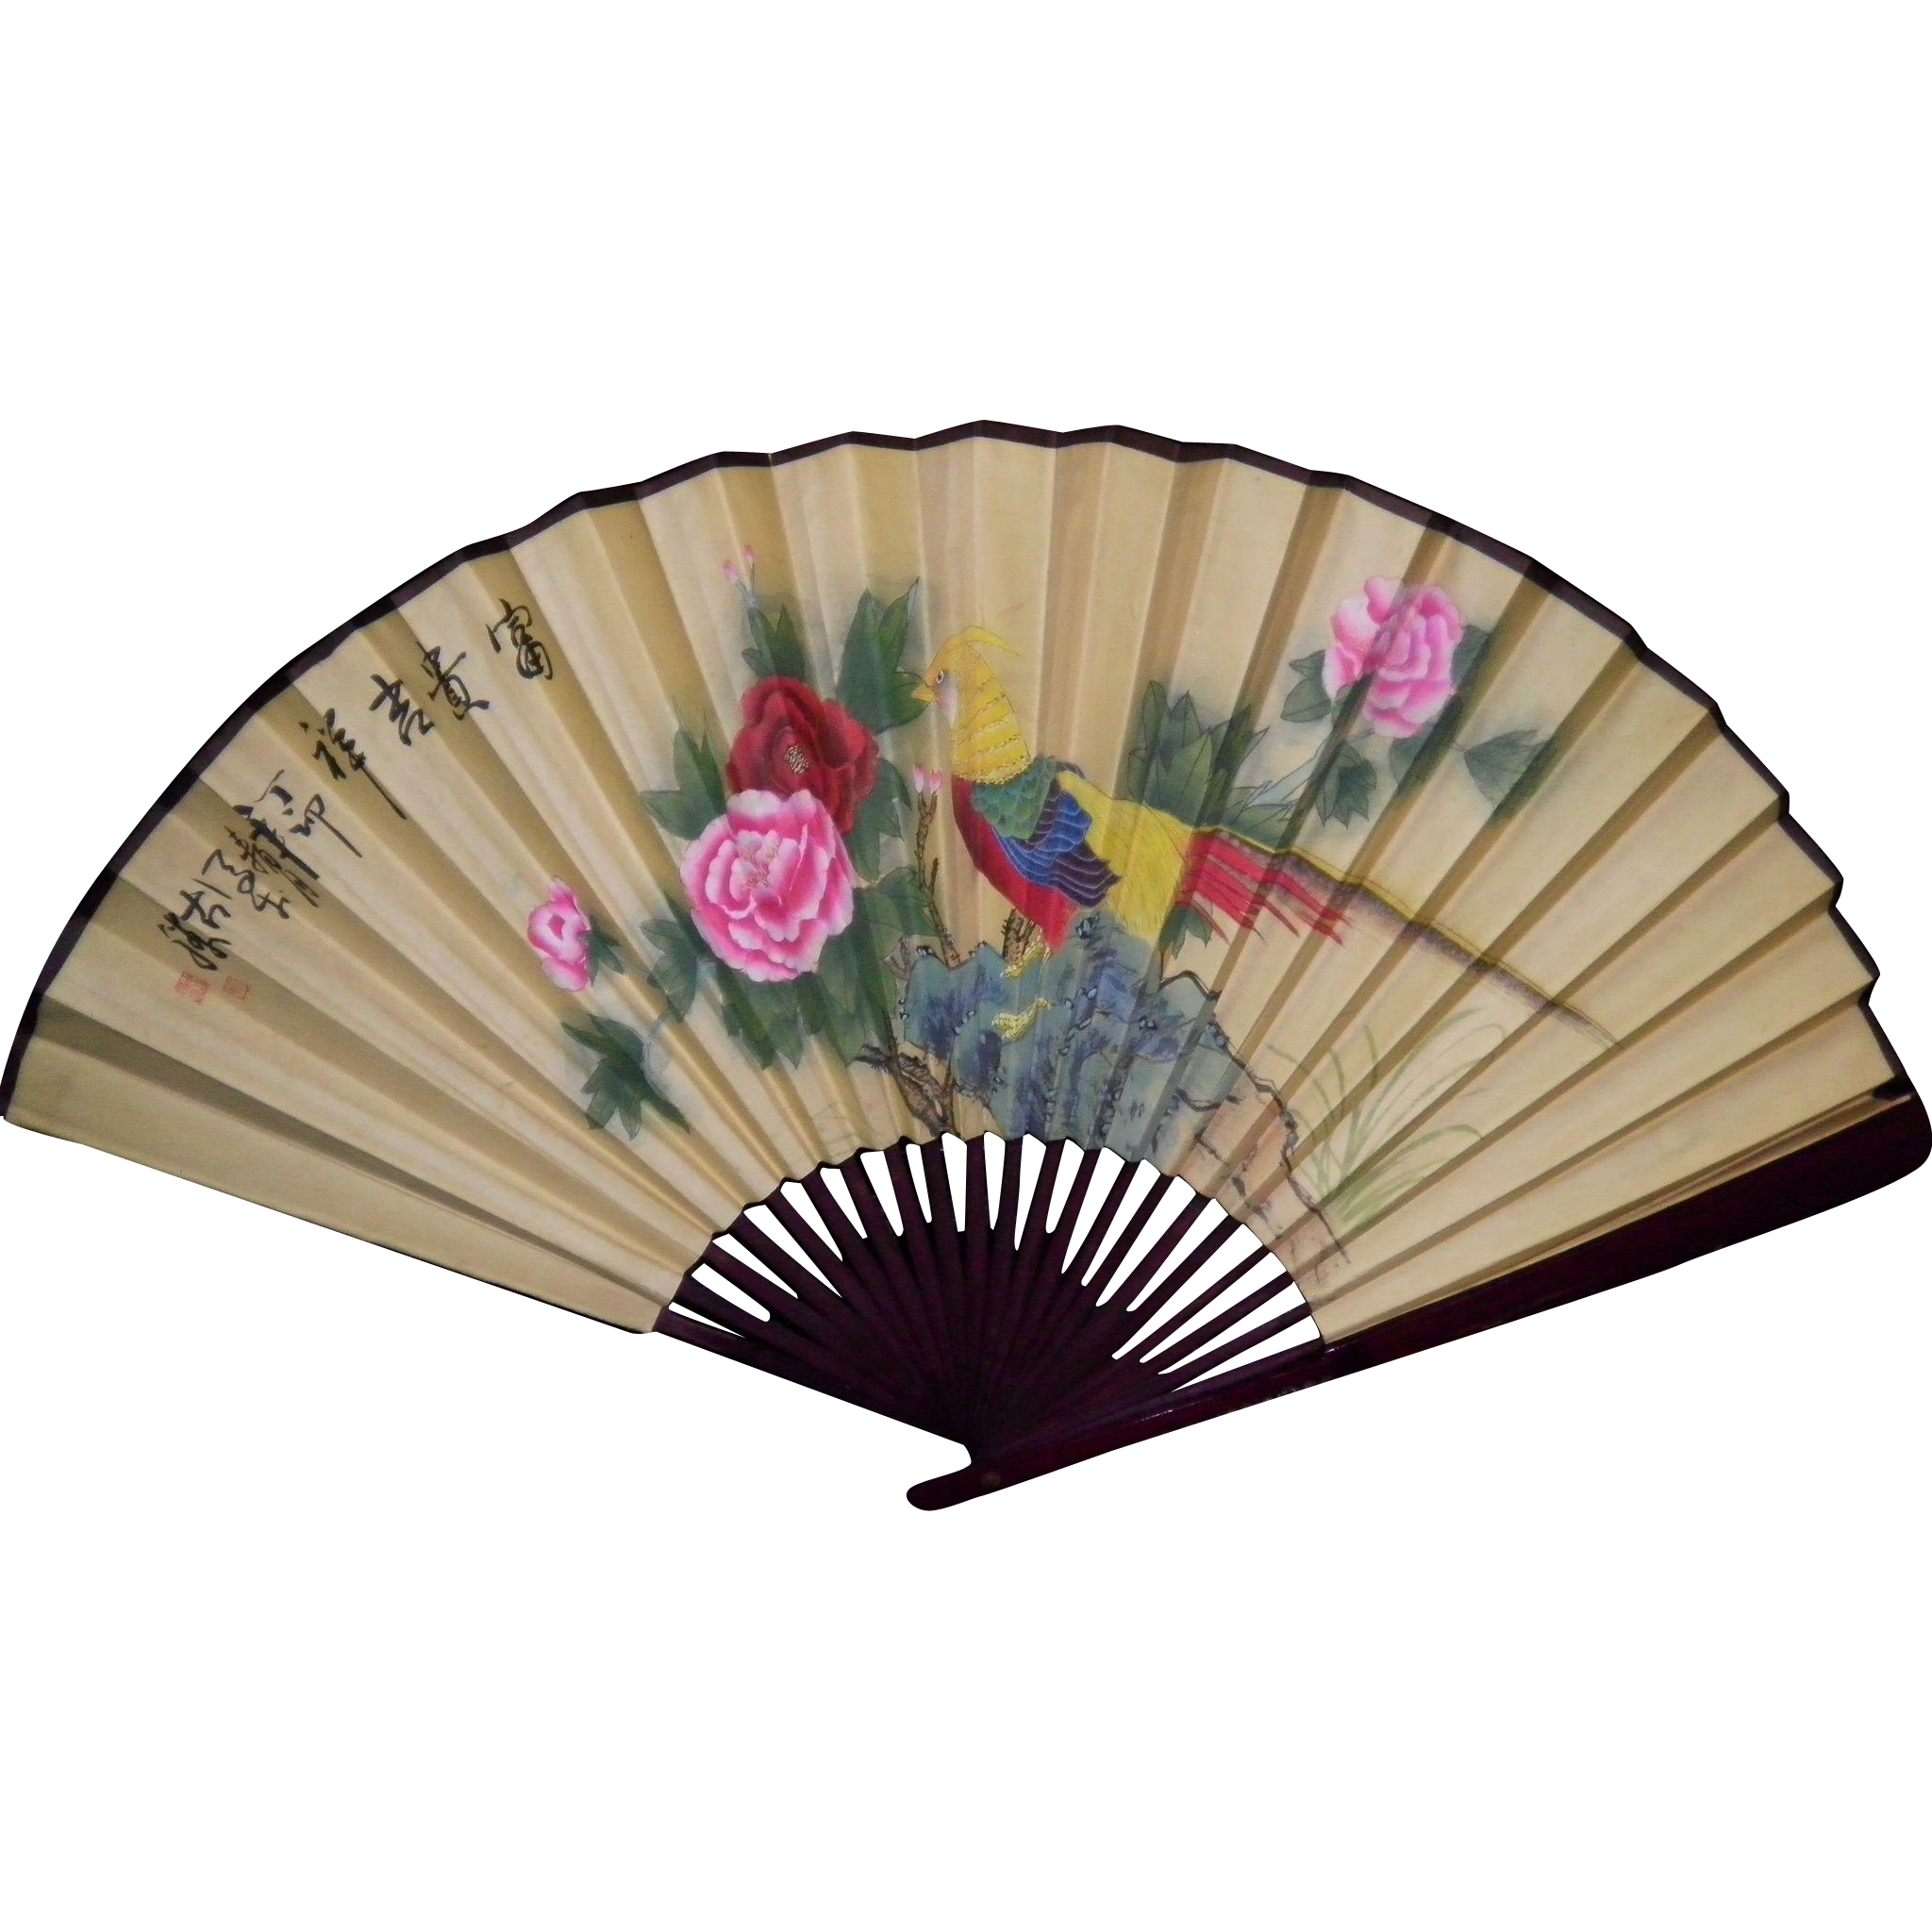 Vintage asian oriental wall fan decor from cameo antiques on ruby lane - Wall fans decorative ...